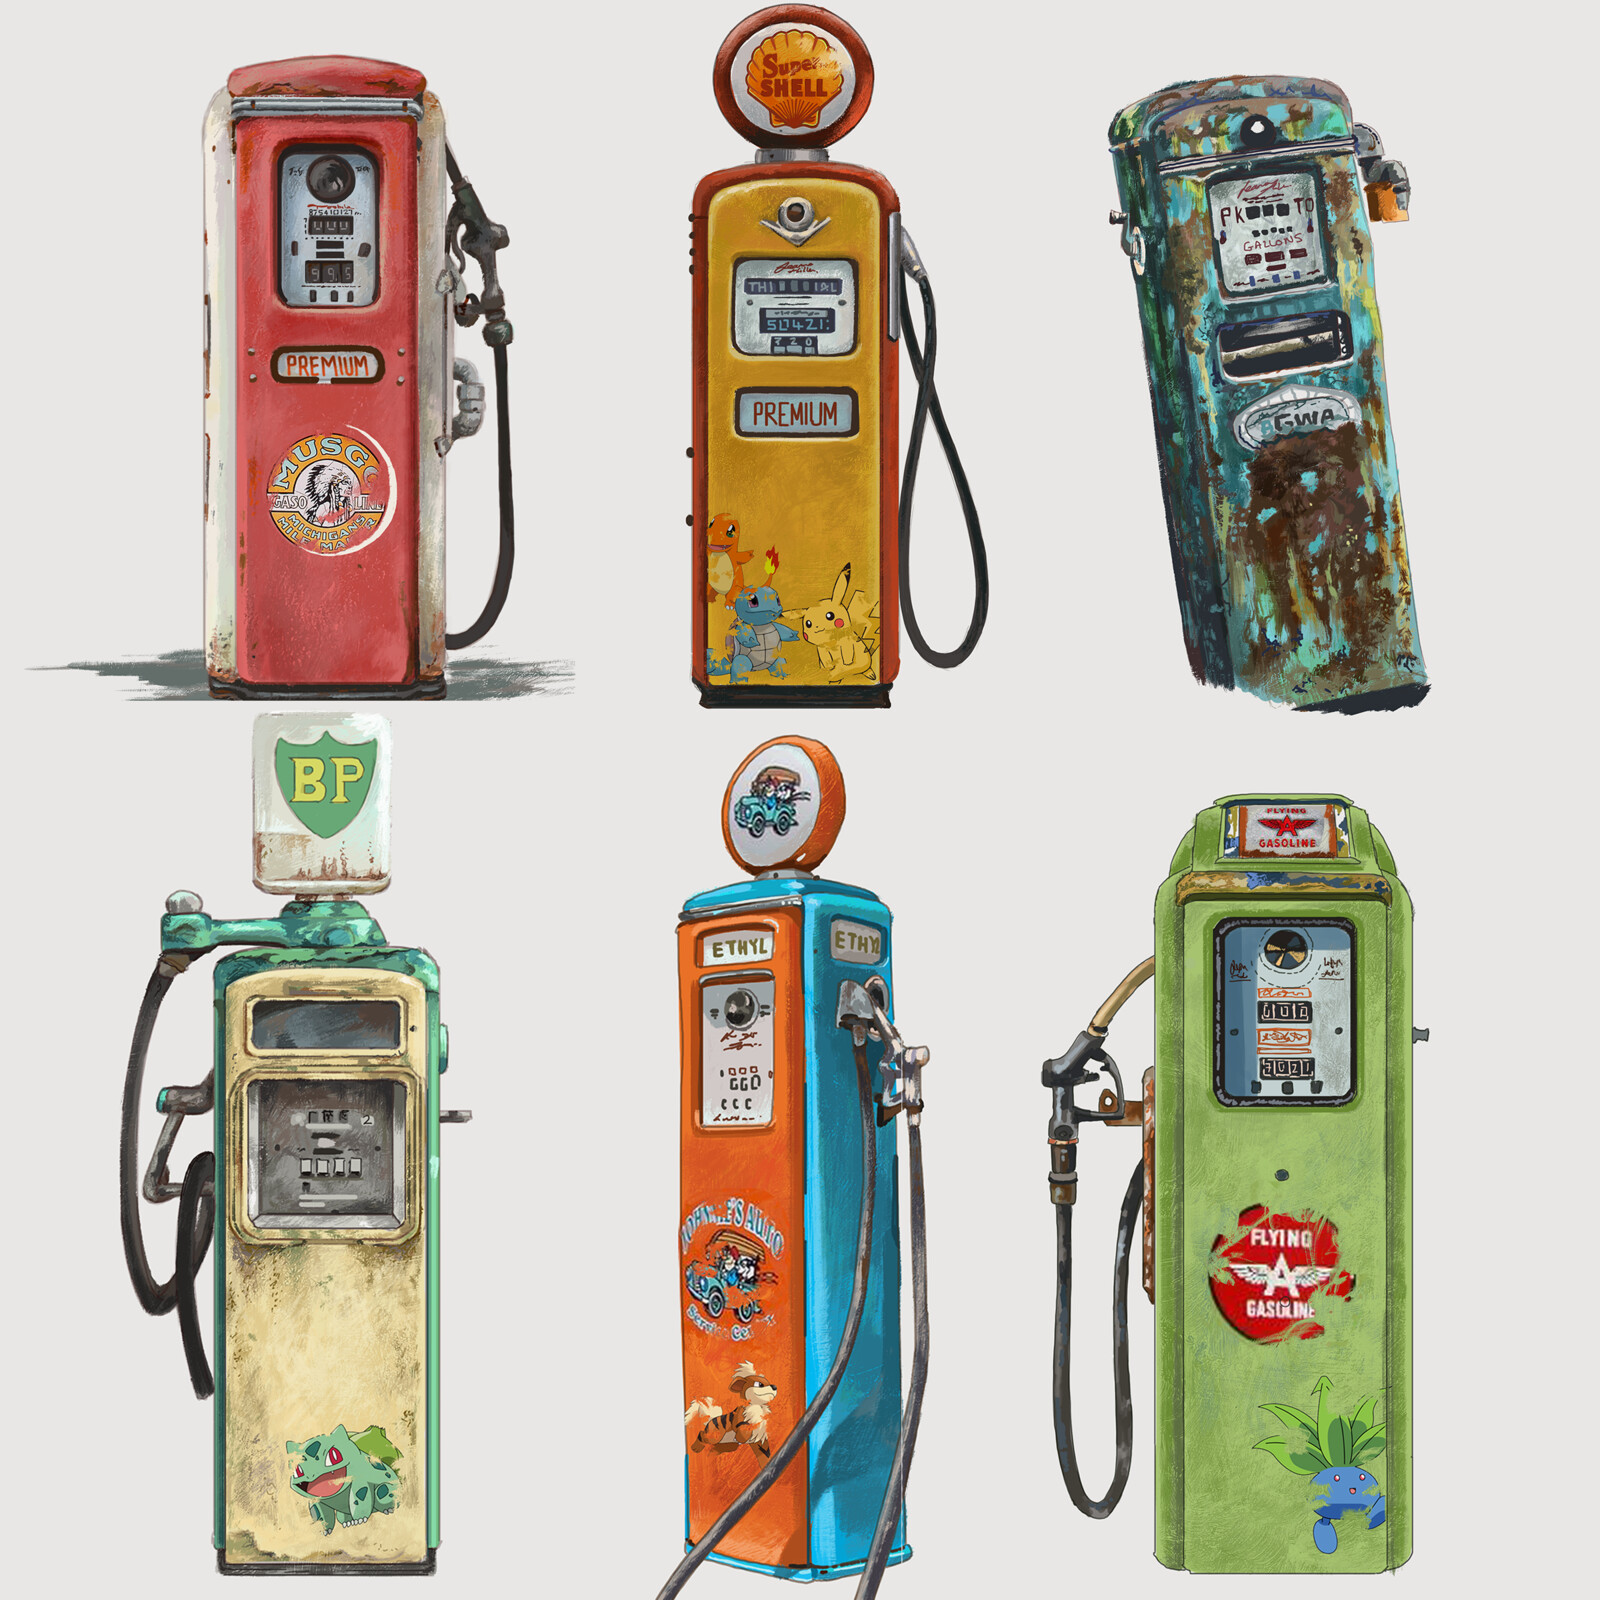 Vintage Pumps - Pokemon Decor